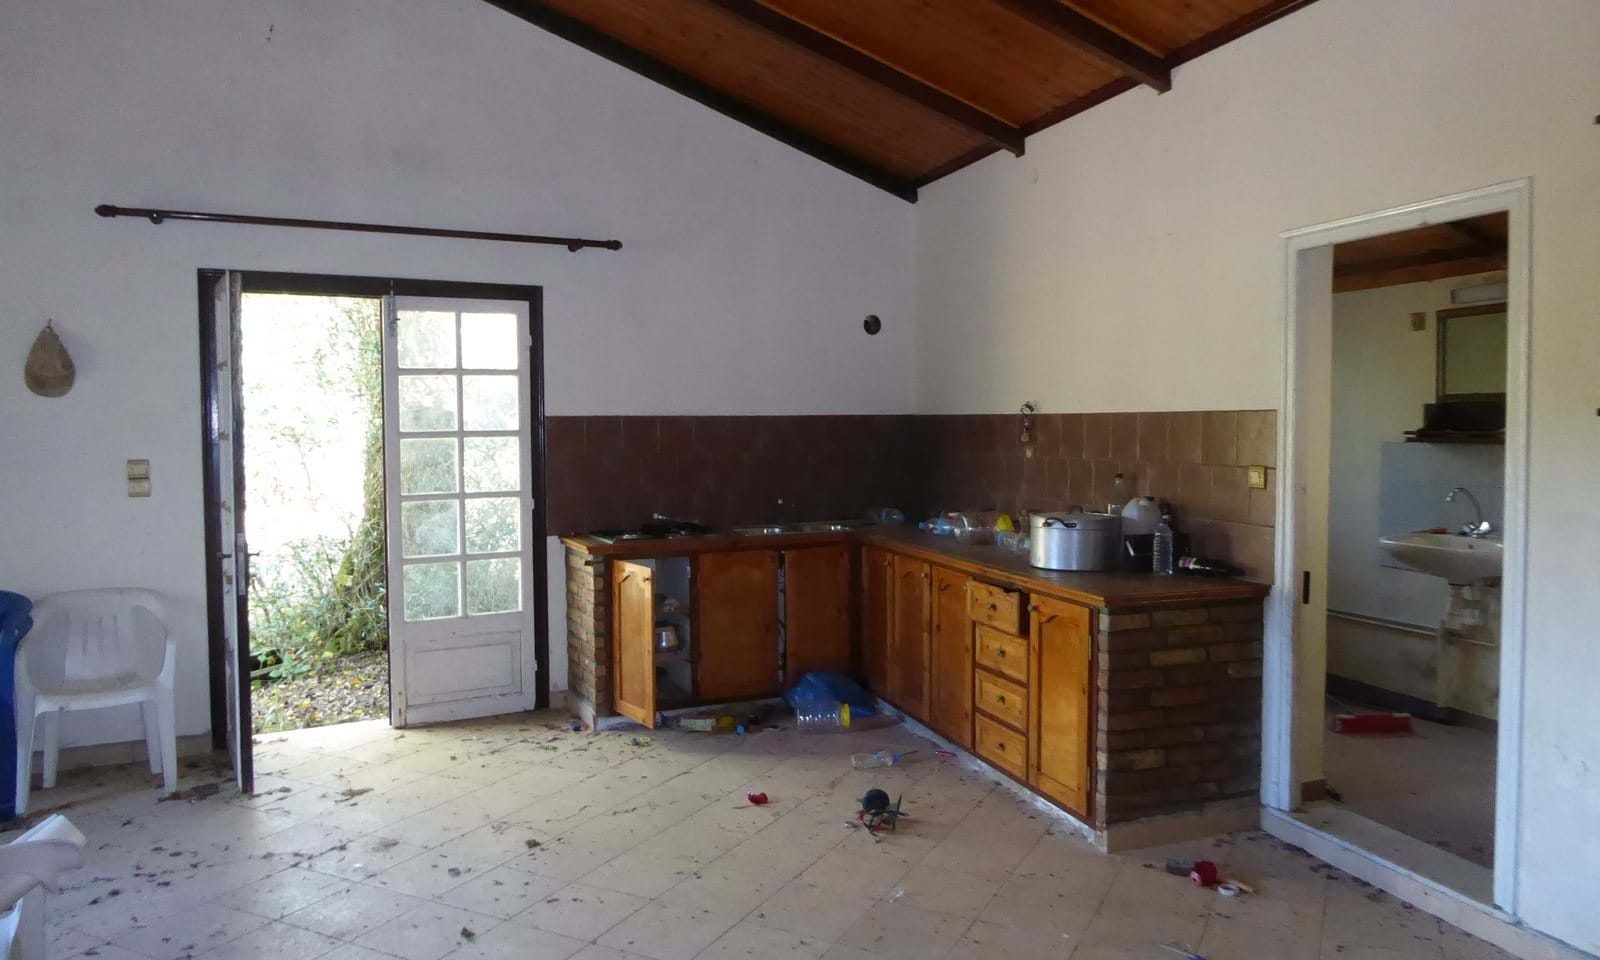 Property in need of renovation in Corfu Greece